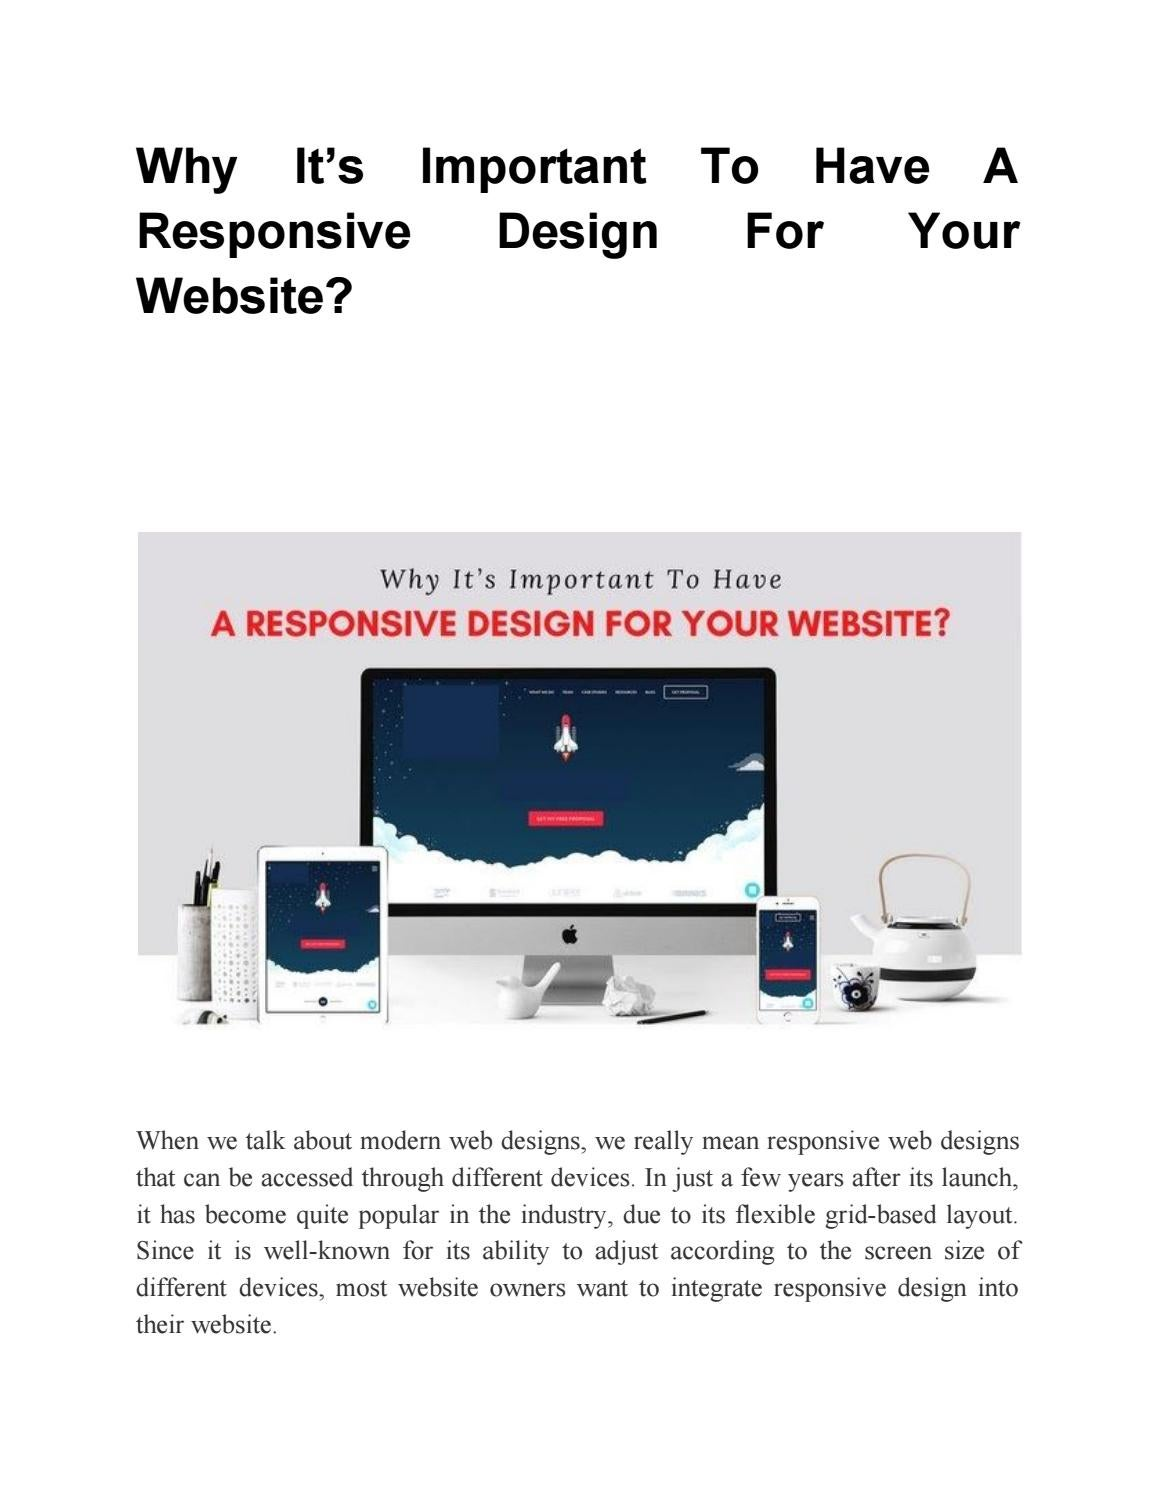 Why It S Important To Have A Responsive Design For Your Website By Davismiketech Issuu